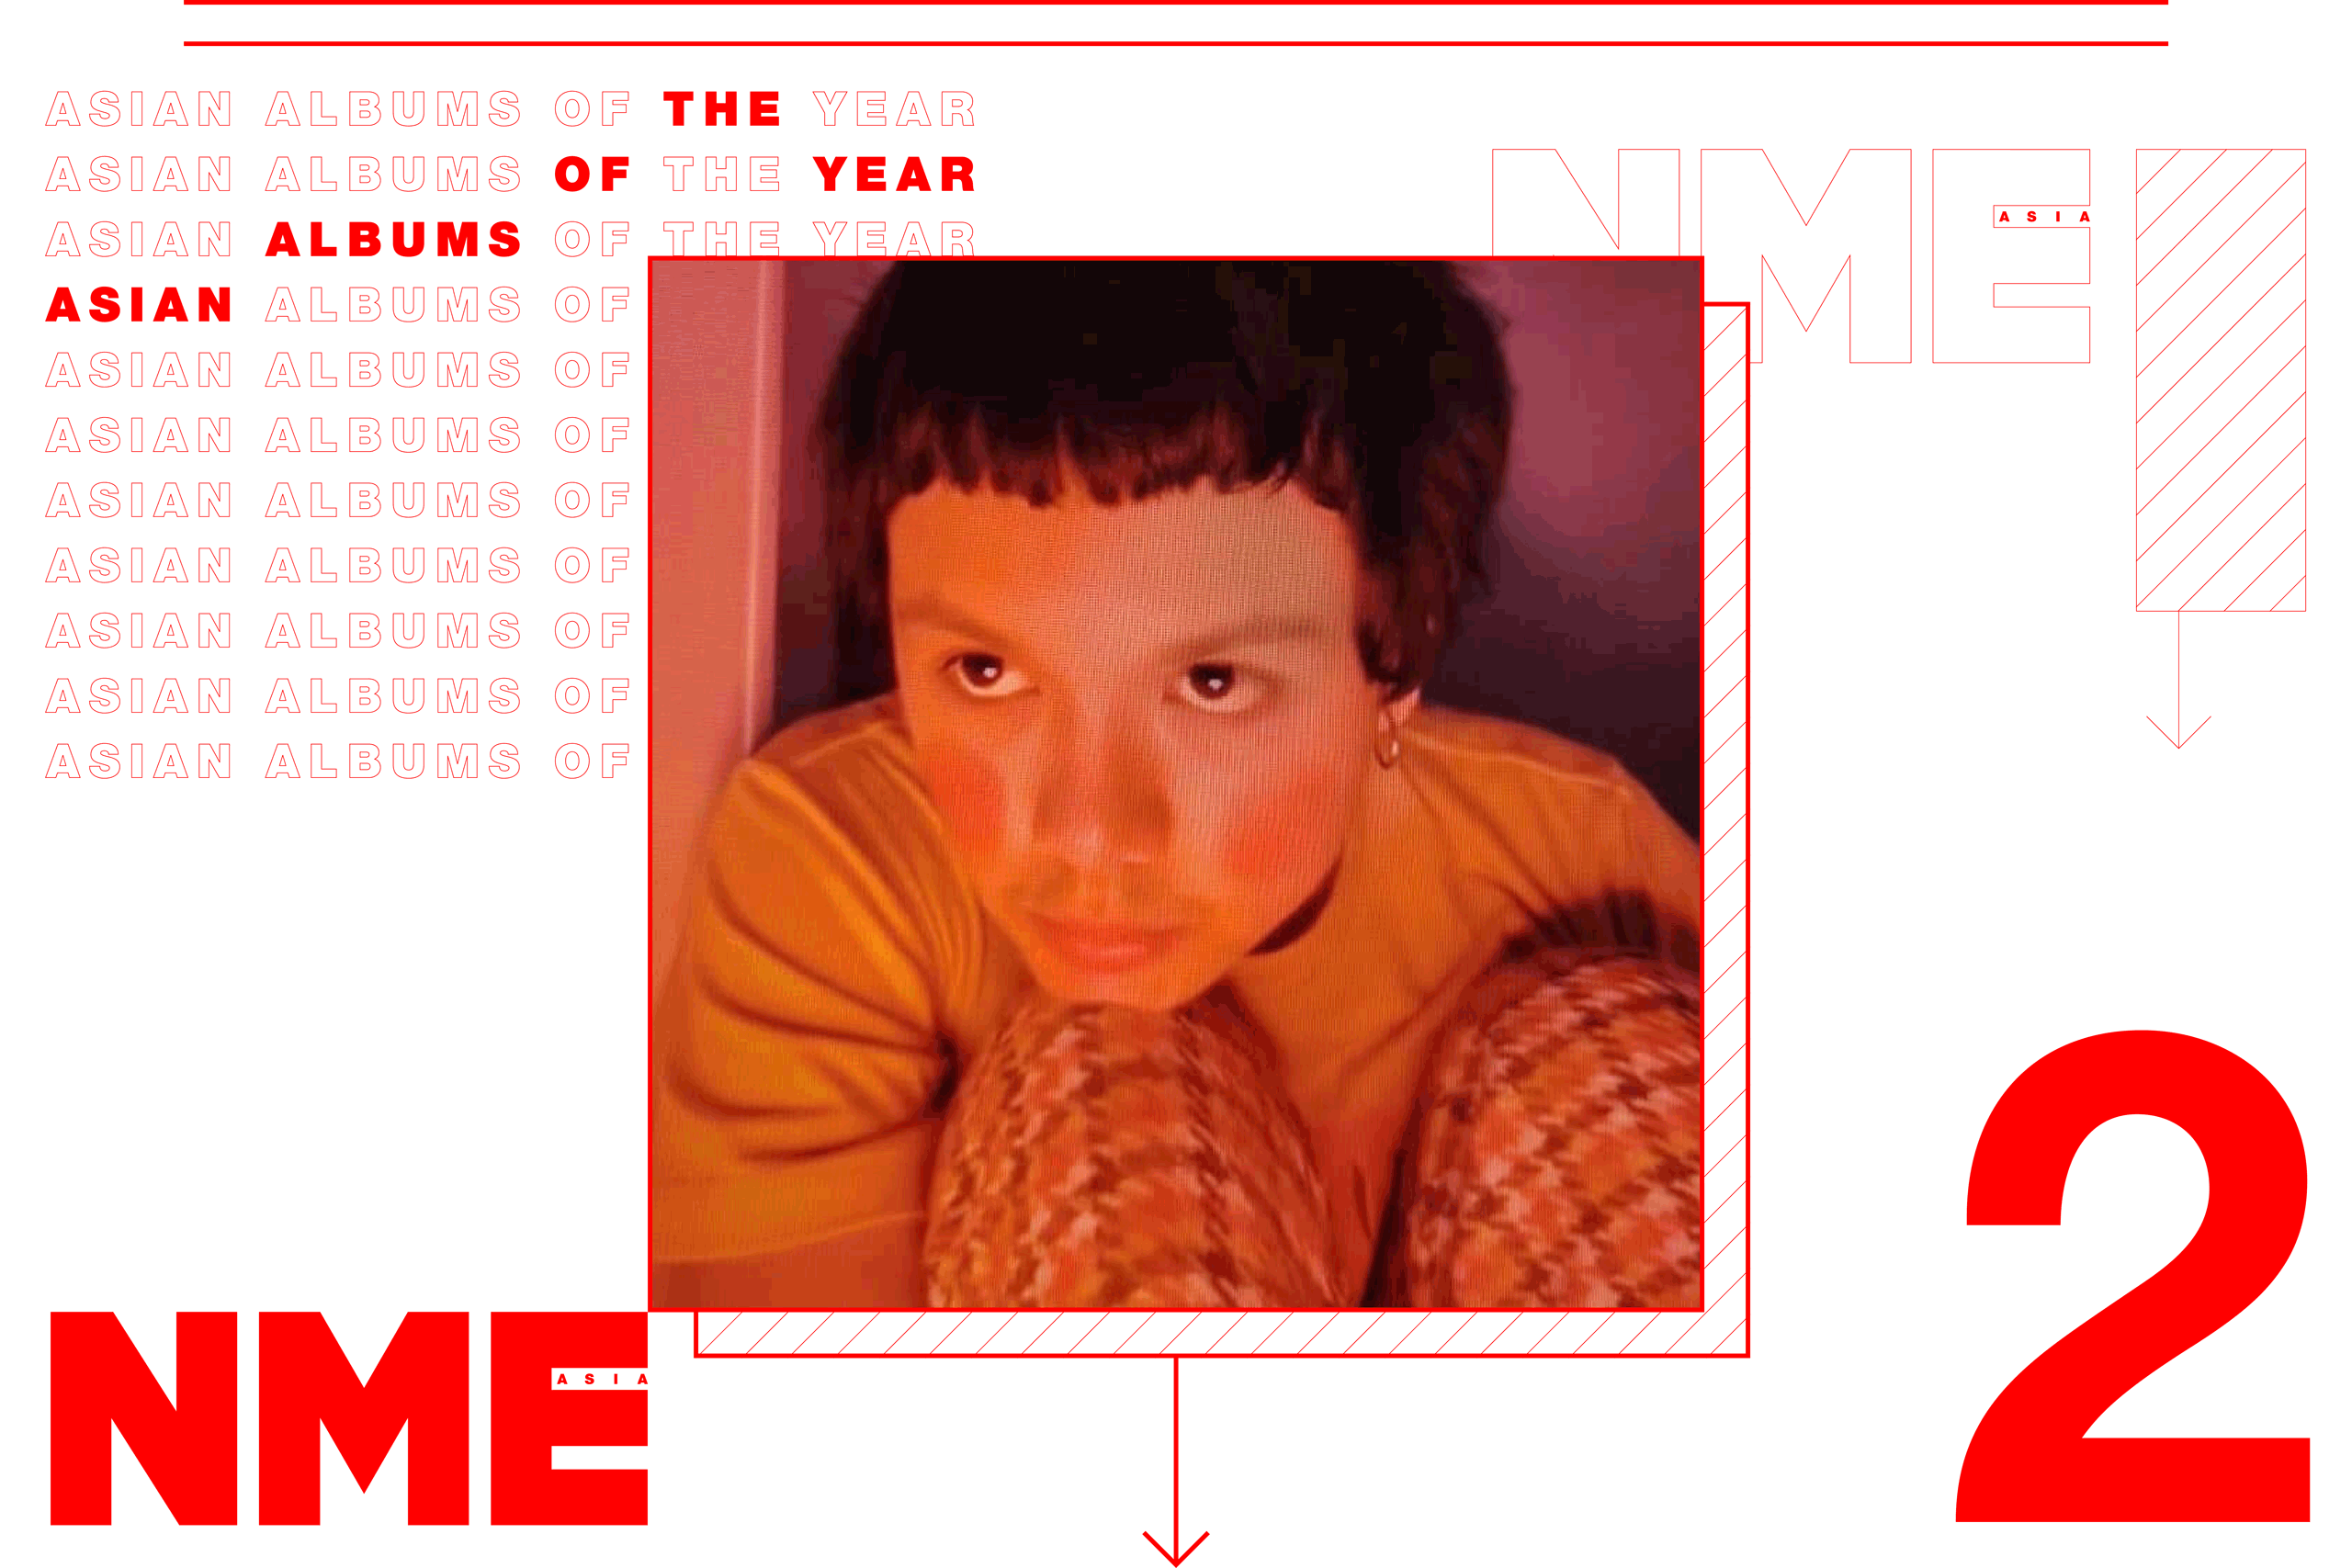 nme asia albums of the year 2020 zild